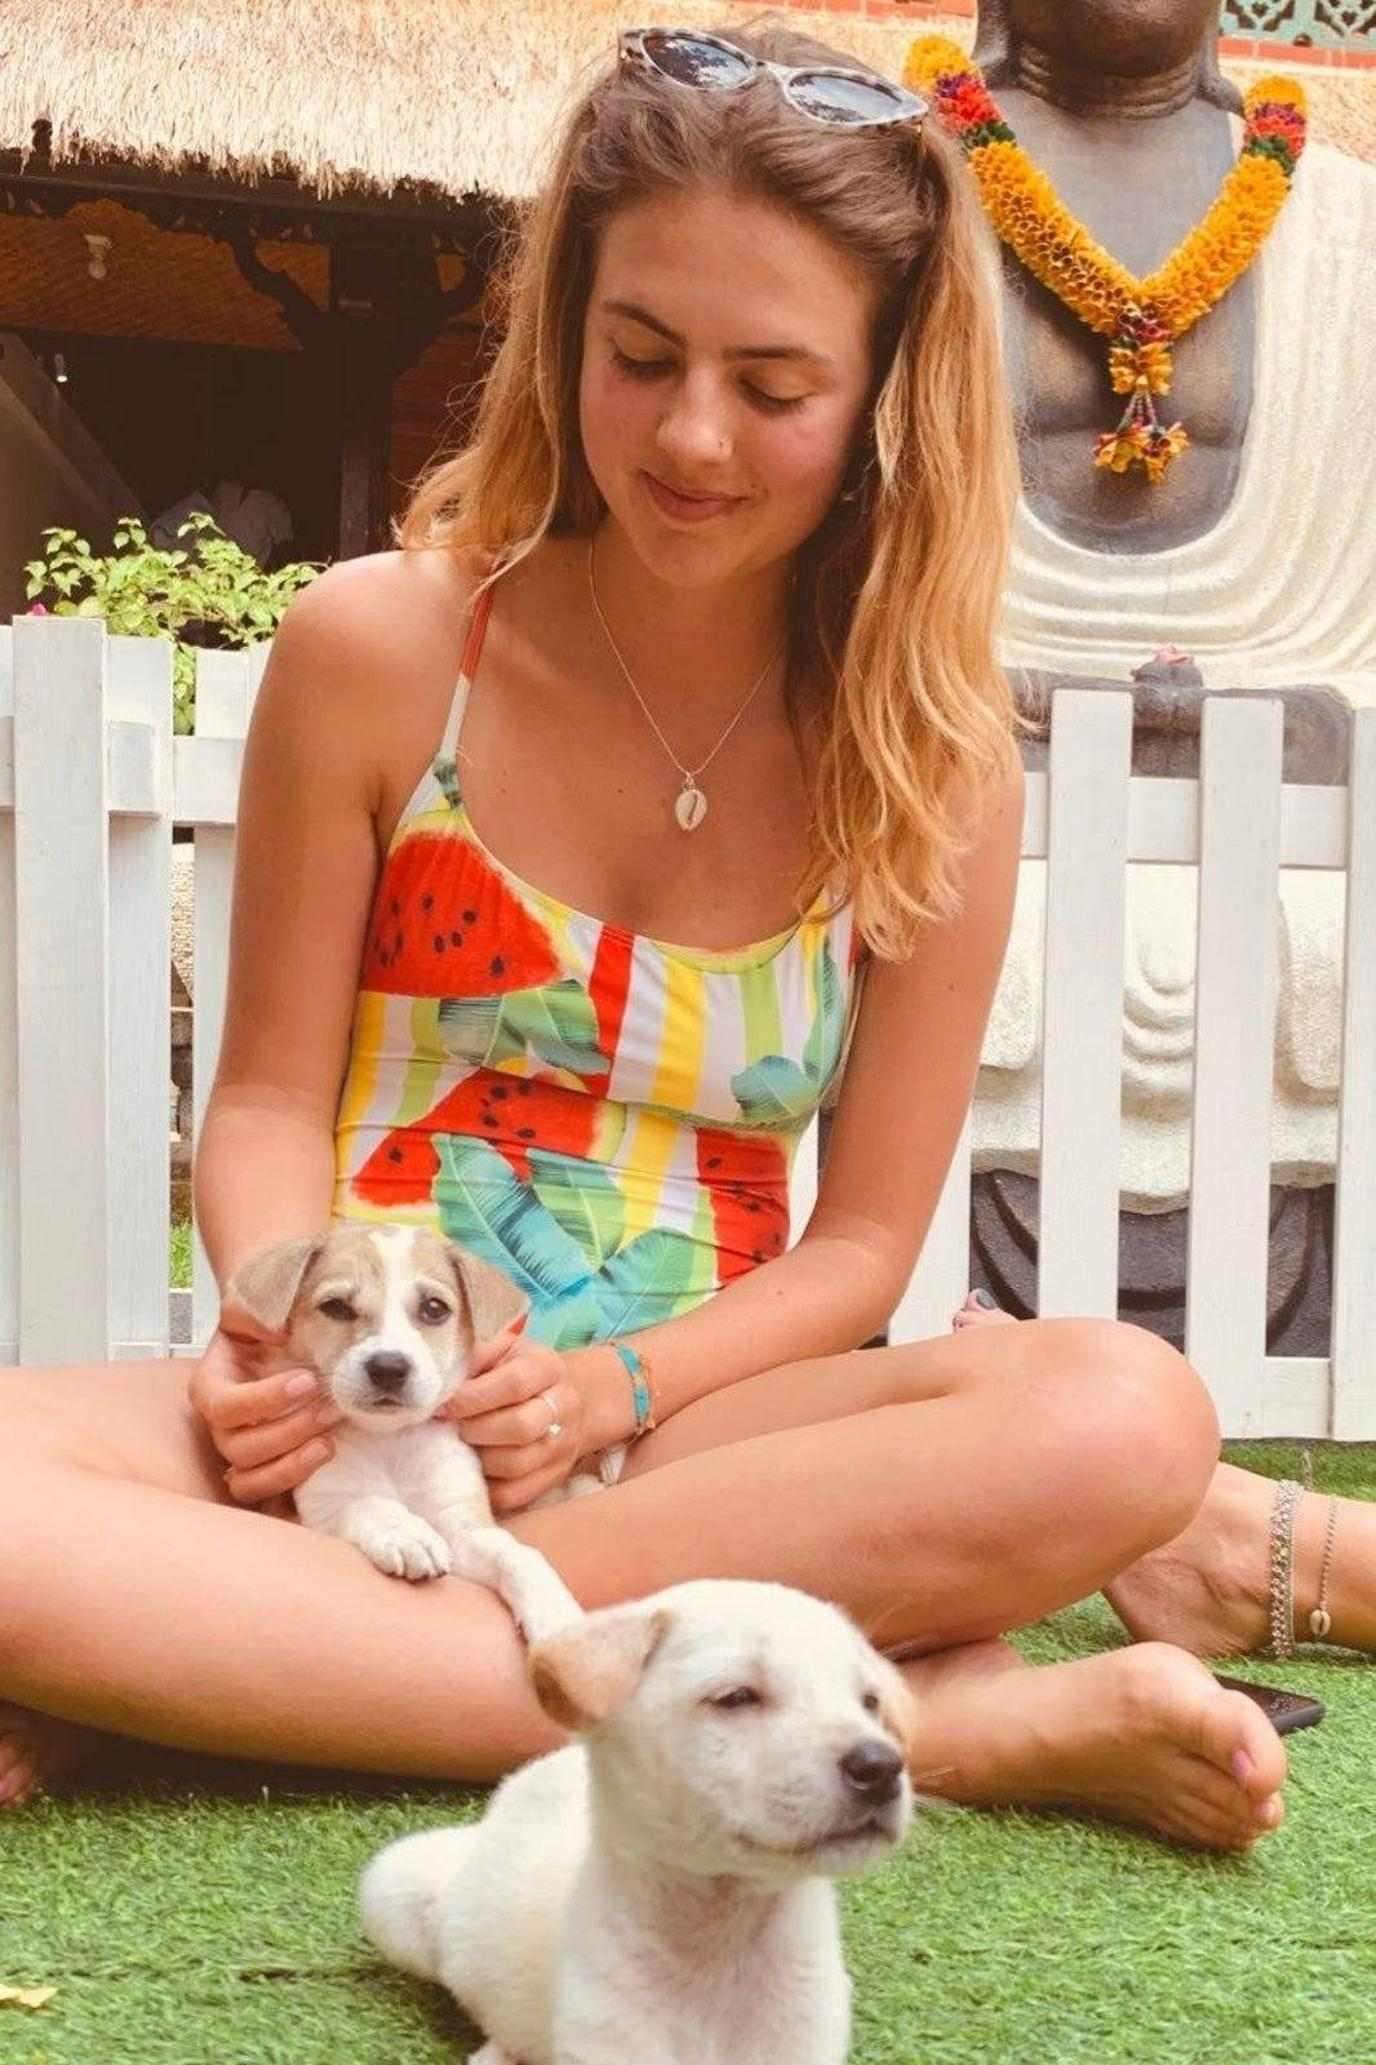 A Woman Cuddles a Labrador Puppy During a Pet-Friendly Airbnb Experience in Bali.